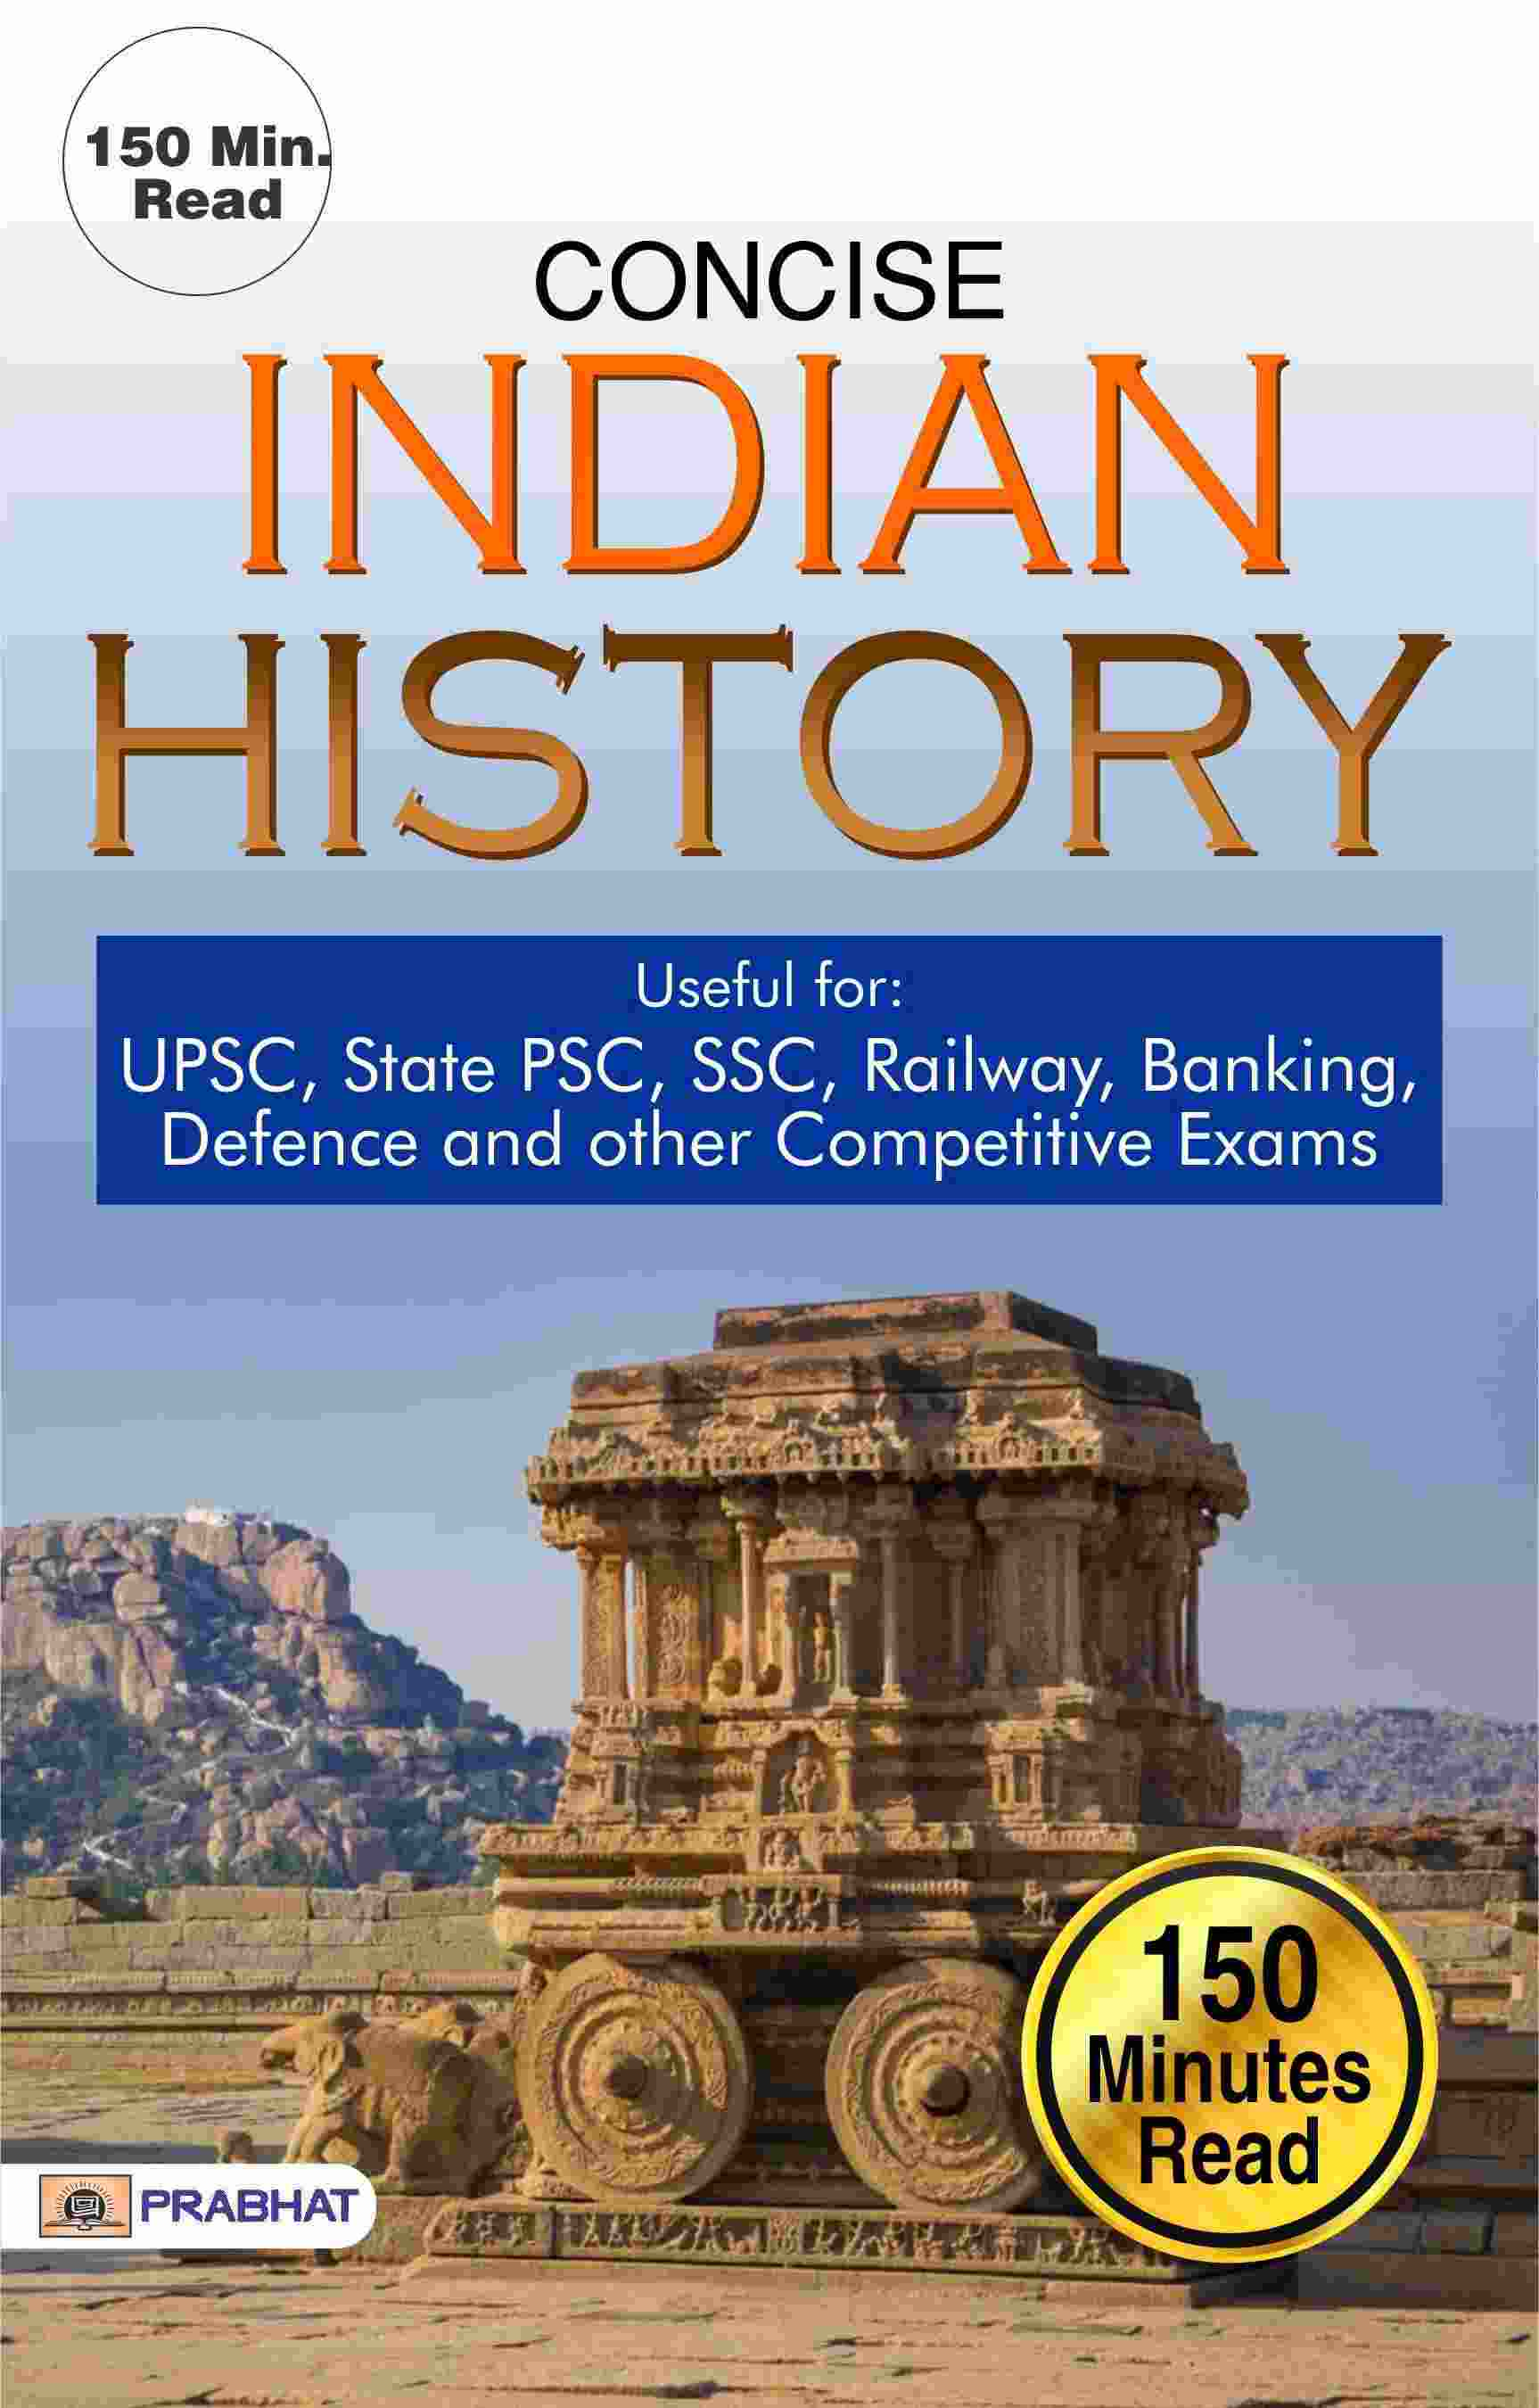 CONCISE INDIAN HISTORY Useful for UPSC, State PSC, SSC, Railway, Banki...